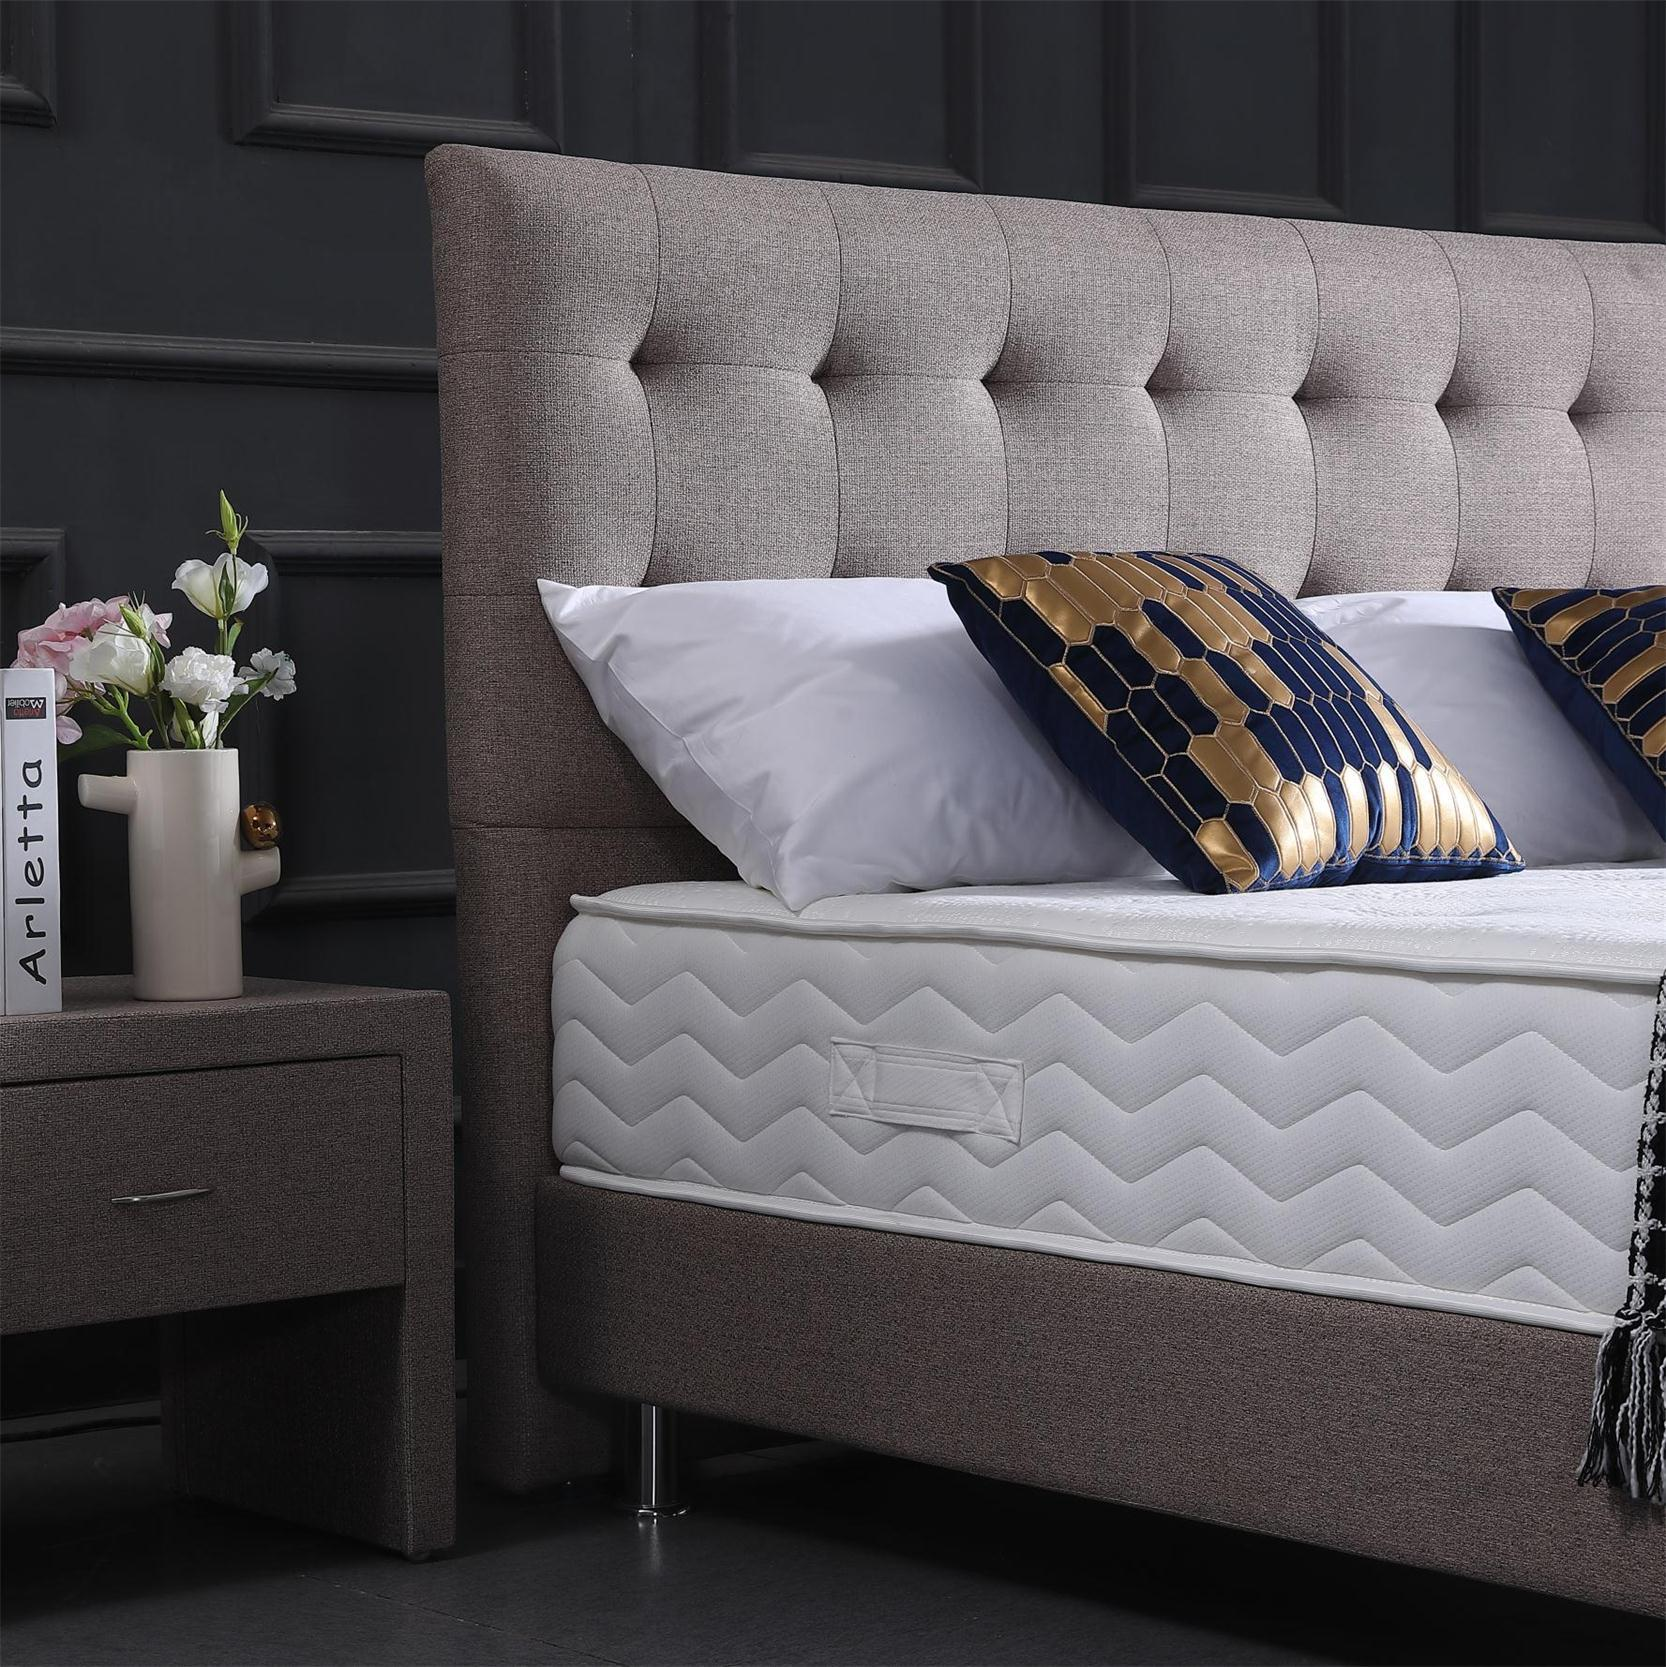 Fansace 21BA-02 Hotel Full-Size Mattress With Tight Top Design Compressed